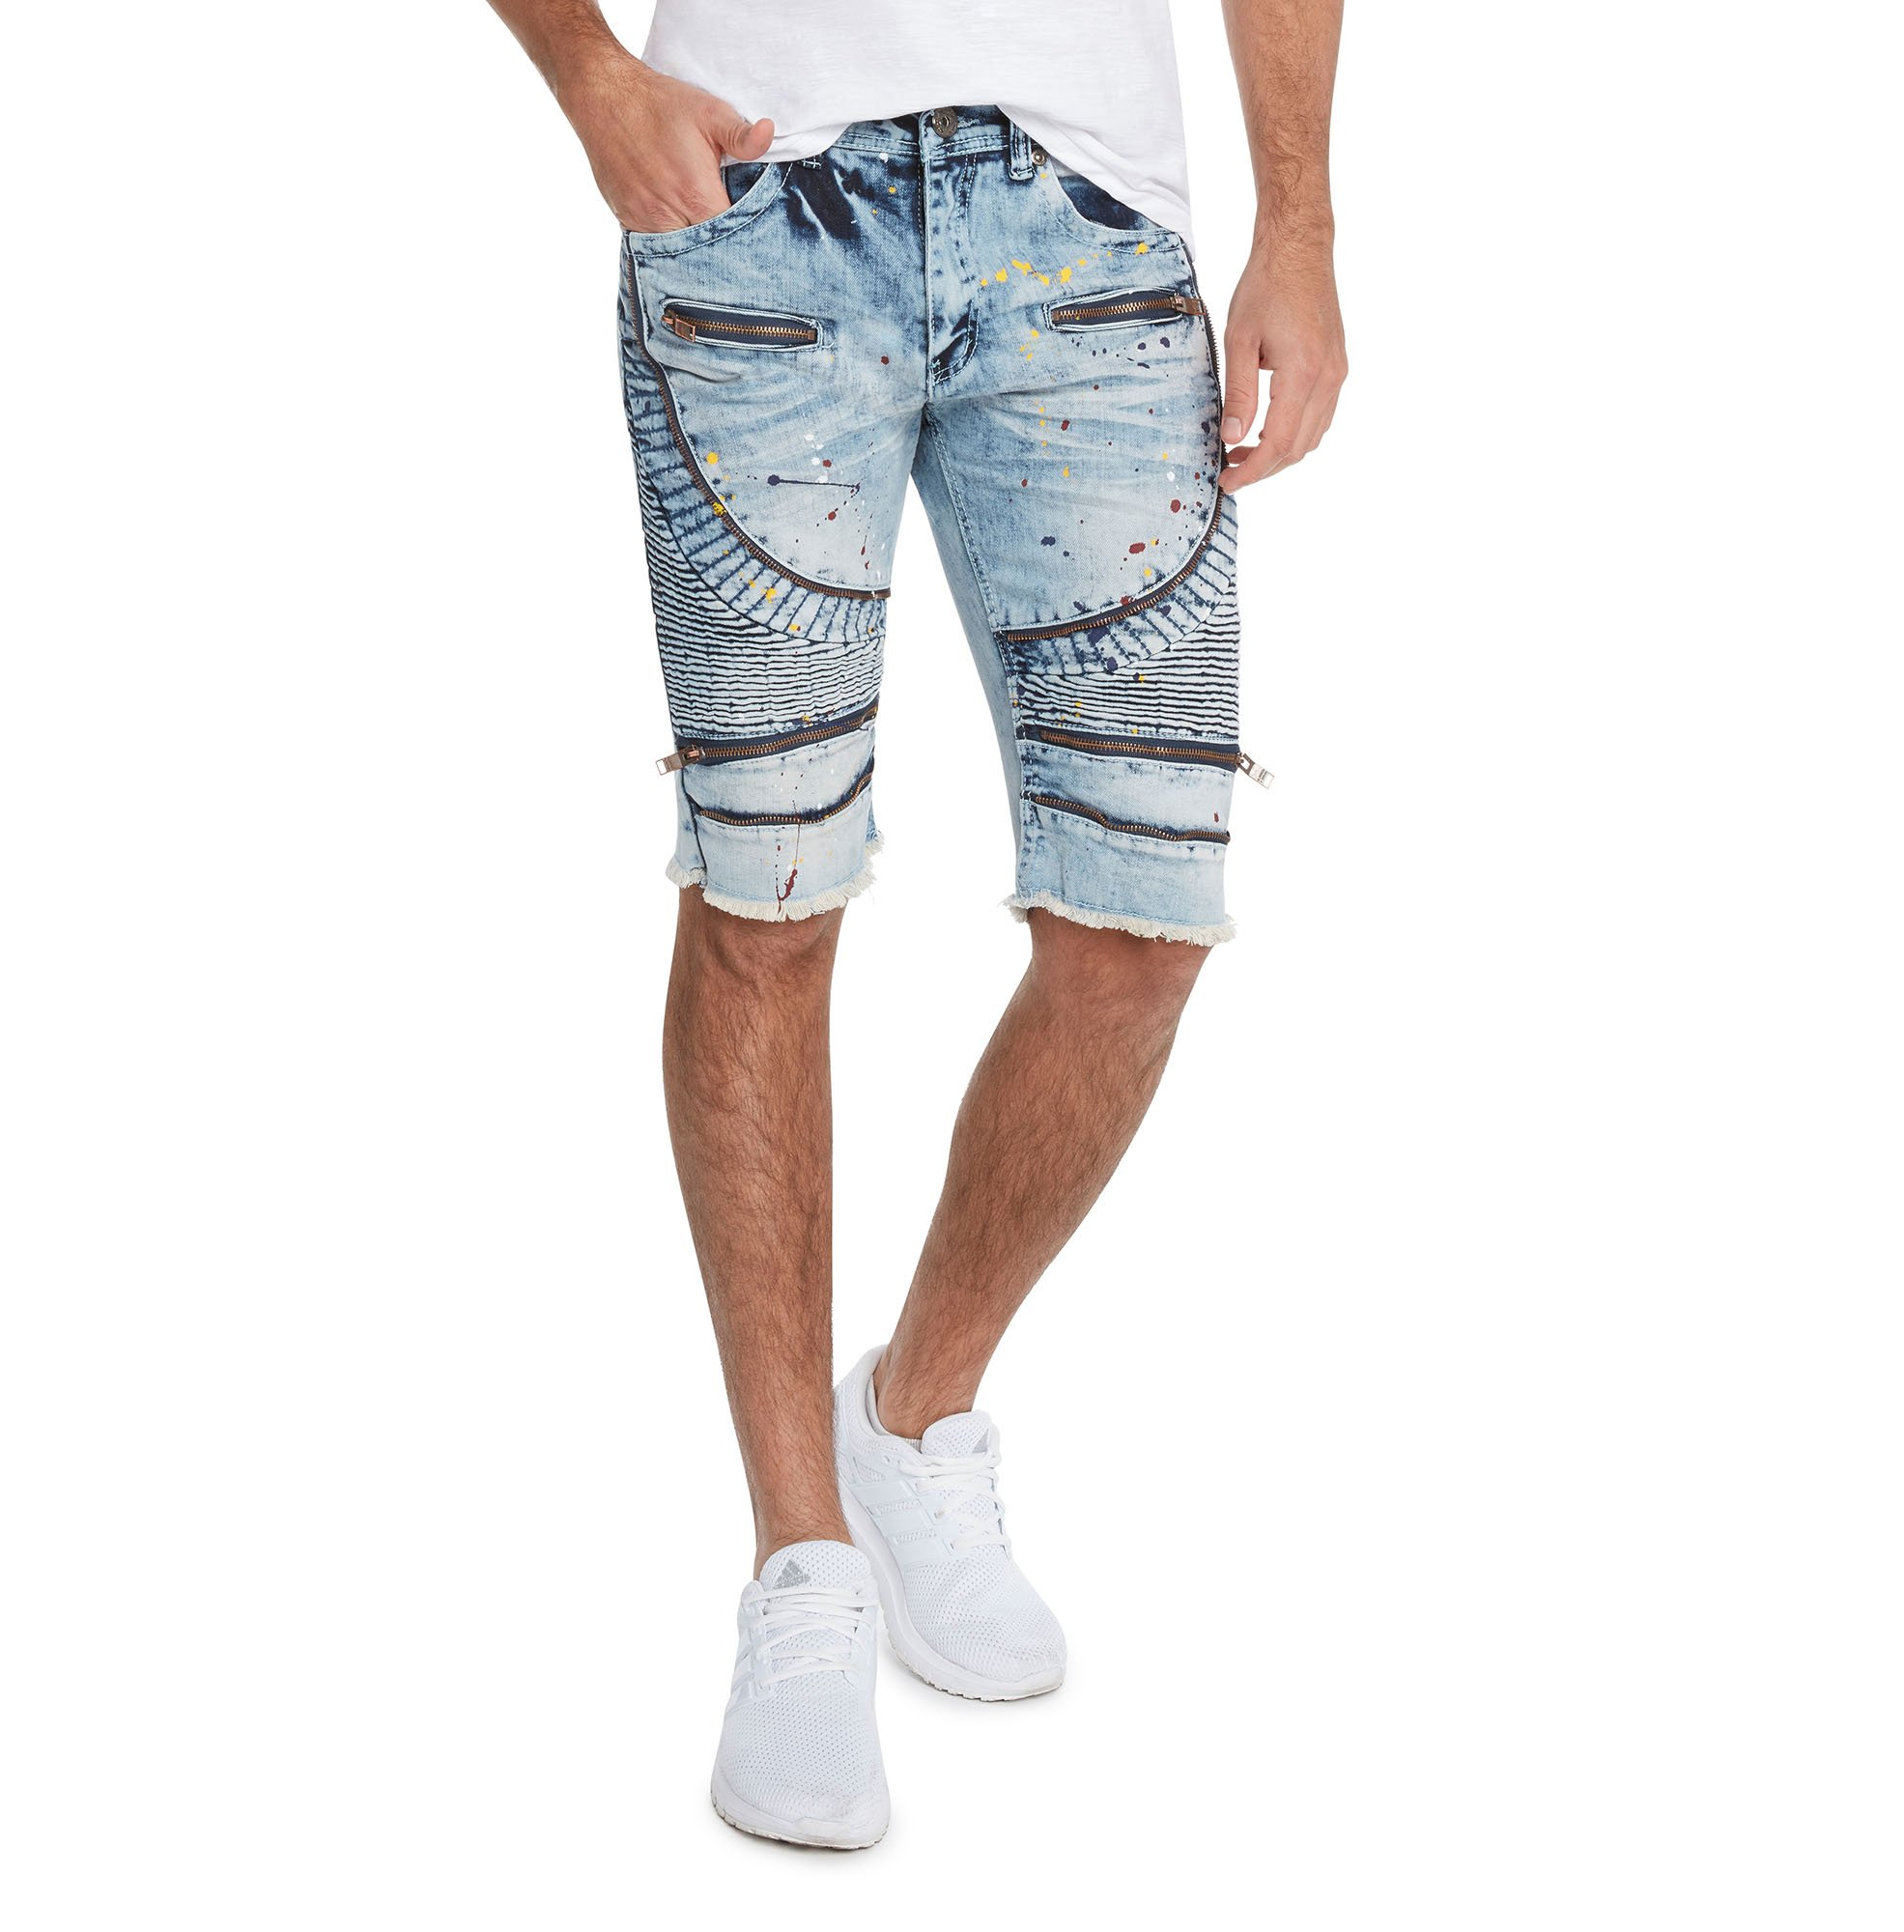 91d0ec81 BLEECKER & MERCER Men's Moto Ripped and Repaired Denim Jeans Shorts - Slim  Fit product image